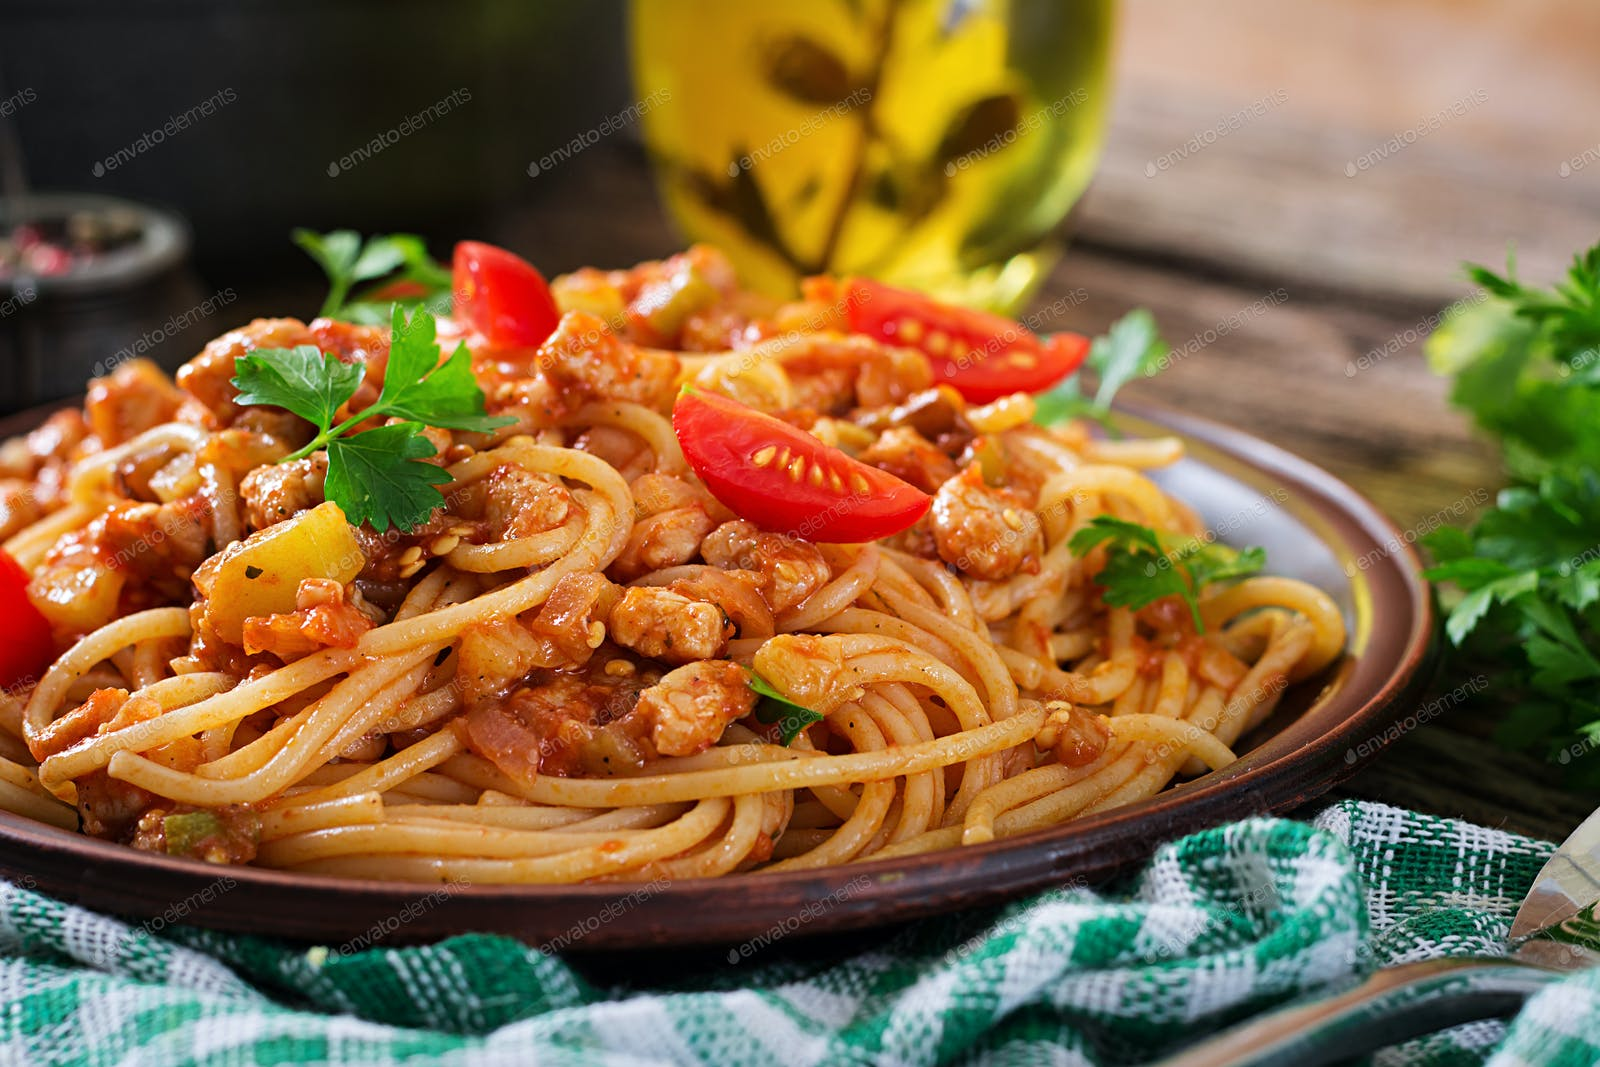 Spaghetti Bolognese Pasta With Tomato Sauce Vegetables And Minced Meat Photo By Timolina On Envato Elements